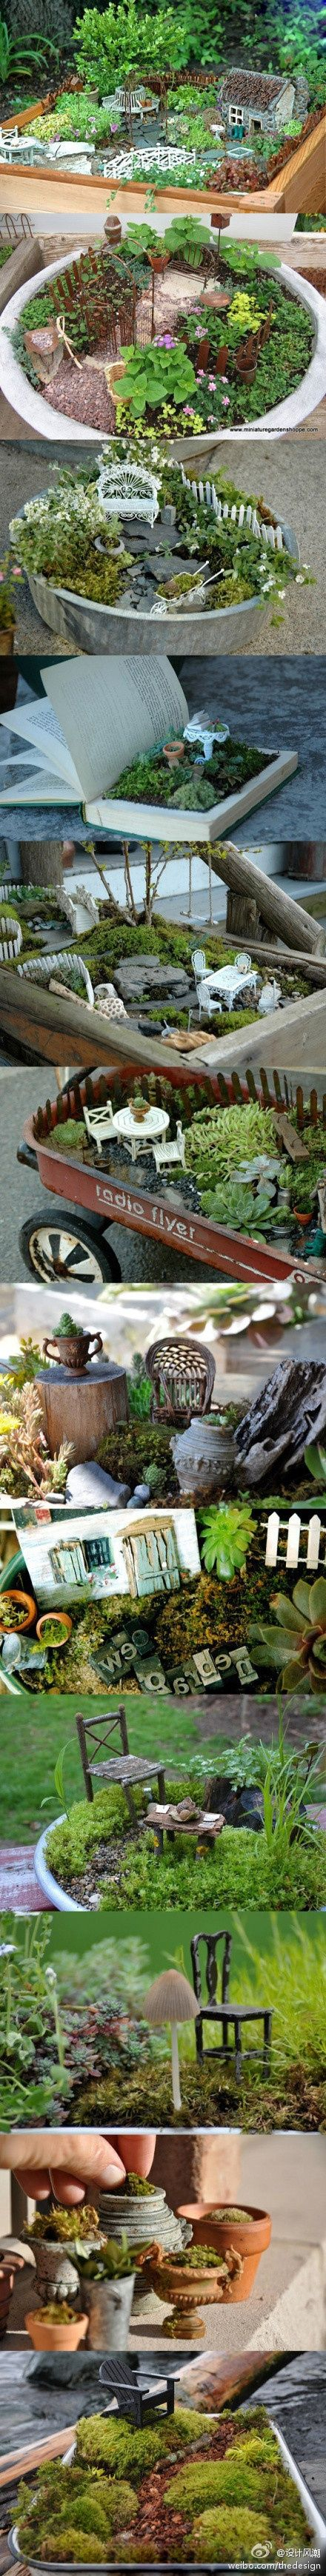 1000 Images About Garden Arts Crafts On Pinterest Topiaries